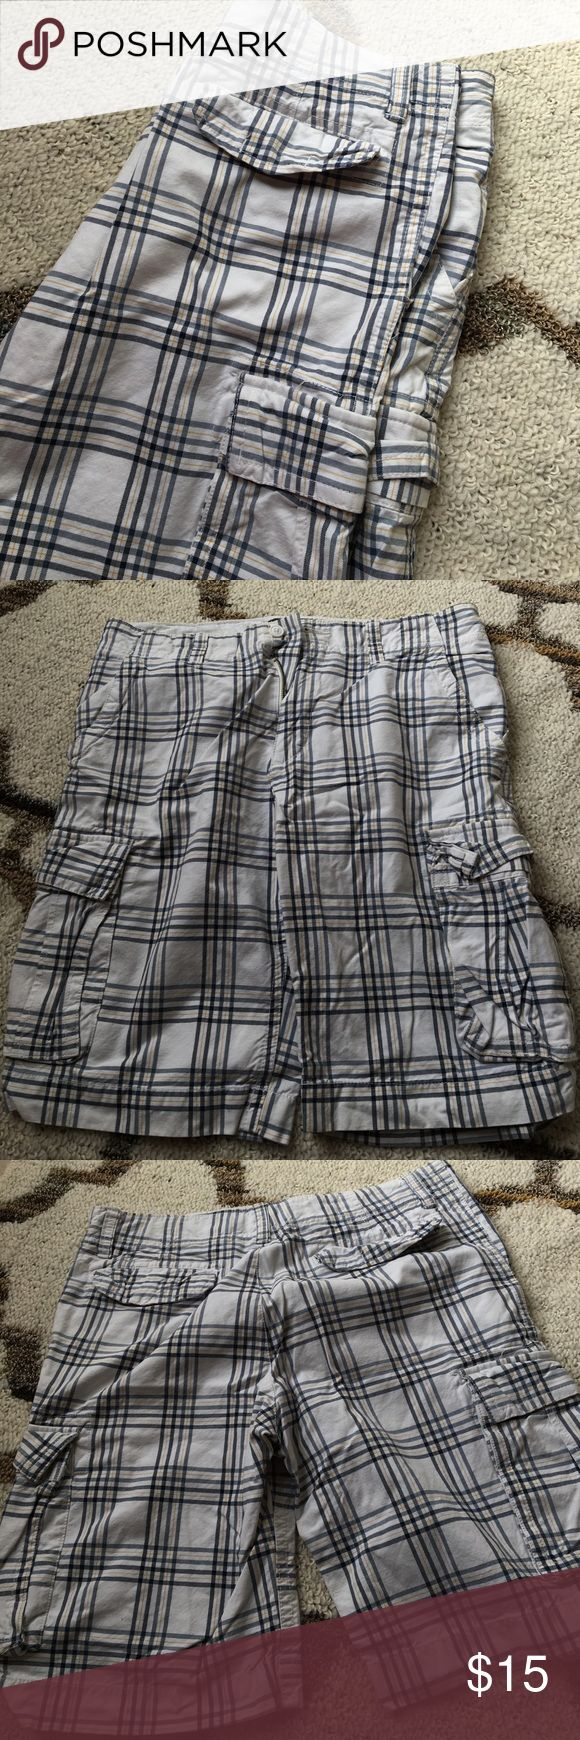 Men's plaid shorts Men's plaid cargo shorts from Old Navy. White, navy and yellow. Old Navy Shorts Cargo